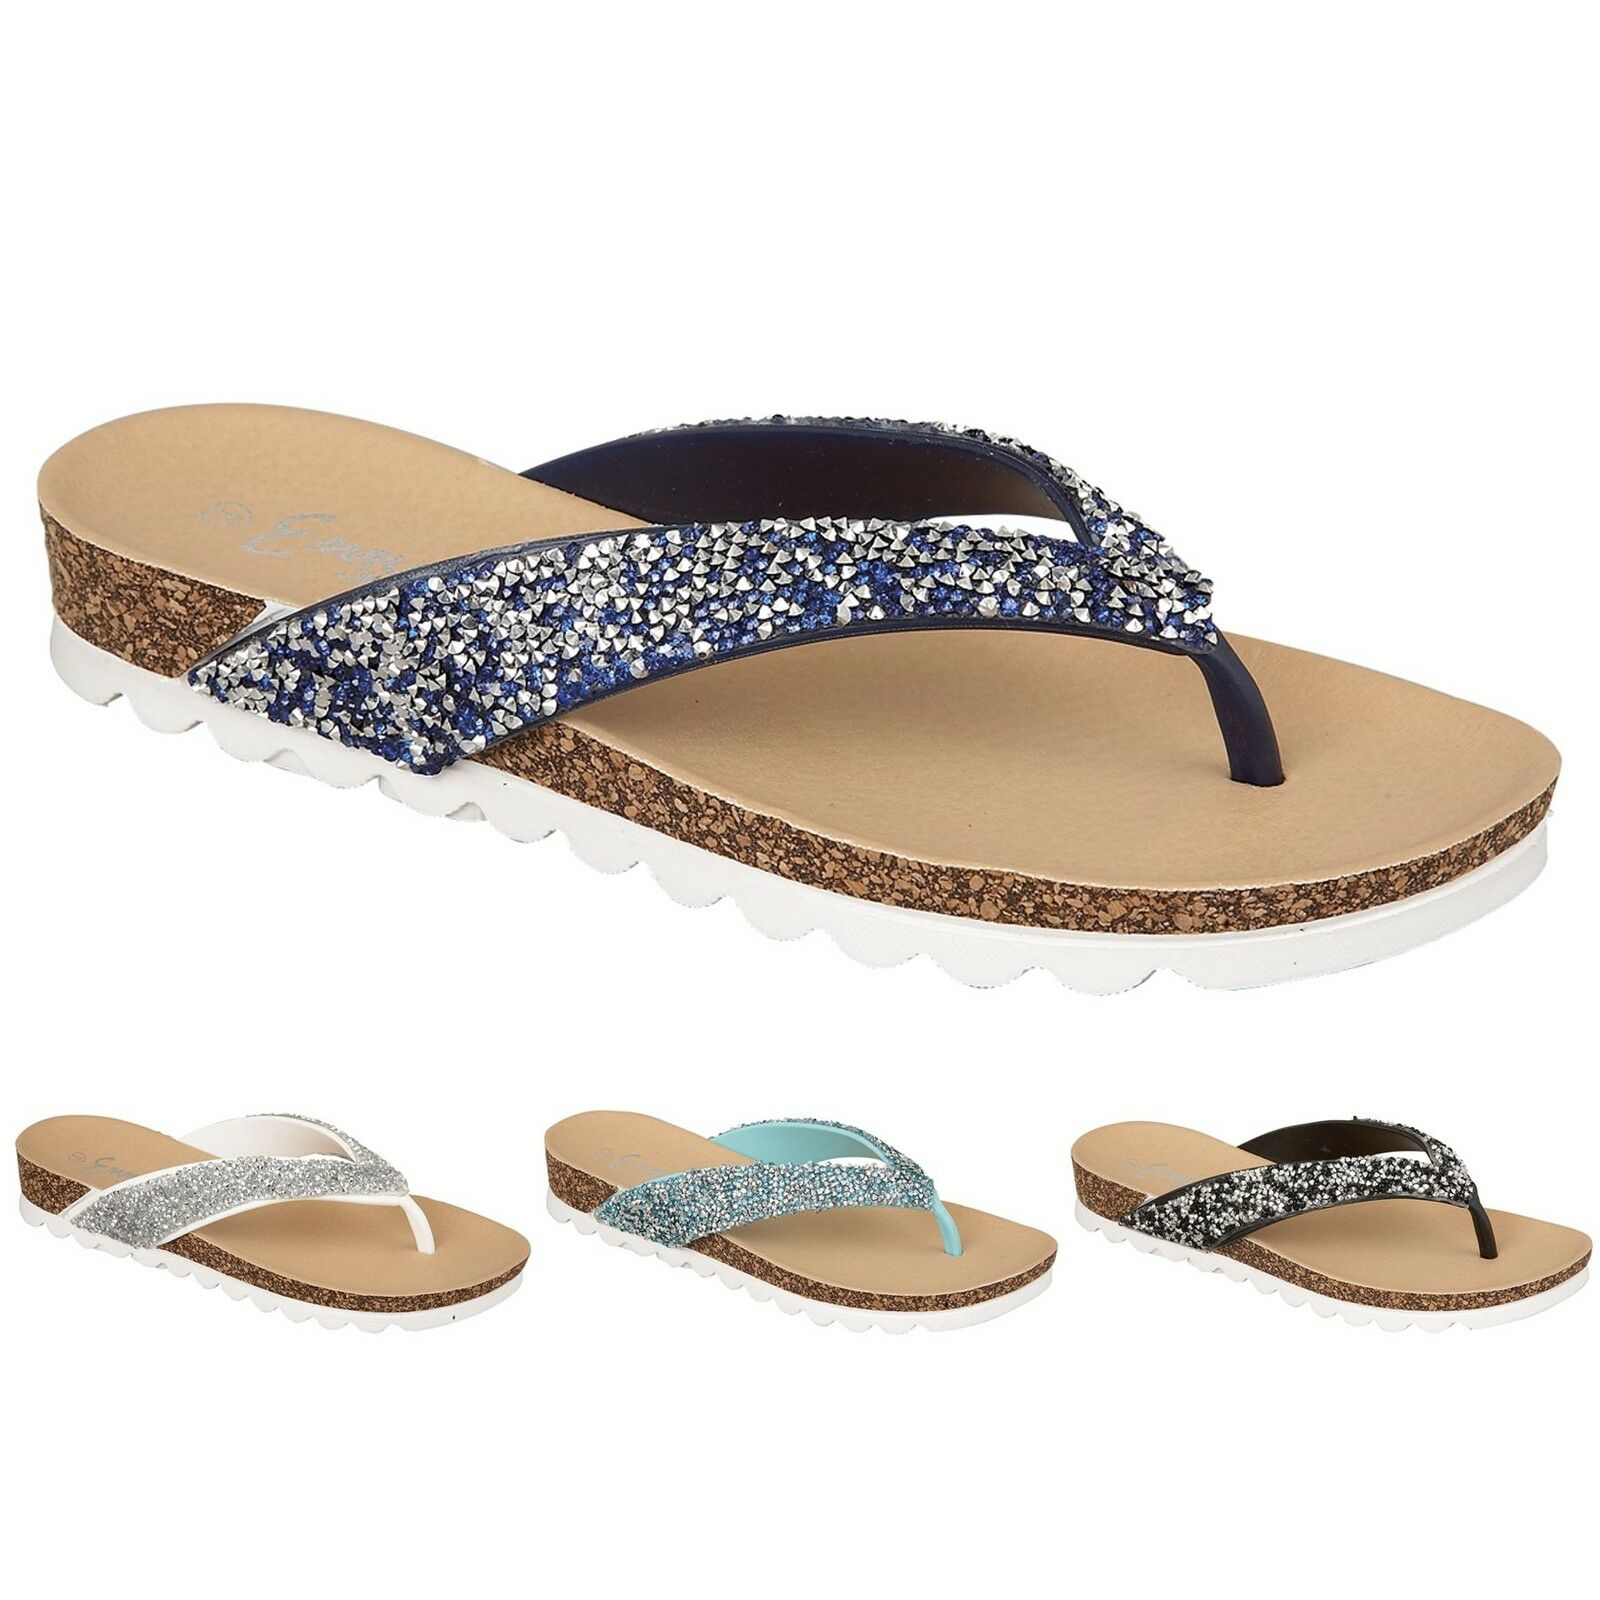 Man/Woman Ladies Diamante Contrast Jewel Encrusted Strap Cork Contrast Diamante Sole Flat Toe Post Sandals excellent quality Attractive fashion Don't worry when shopping VR170 a9af07